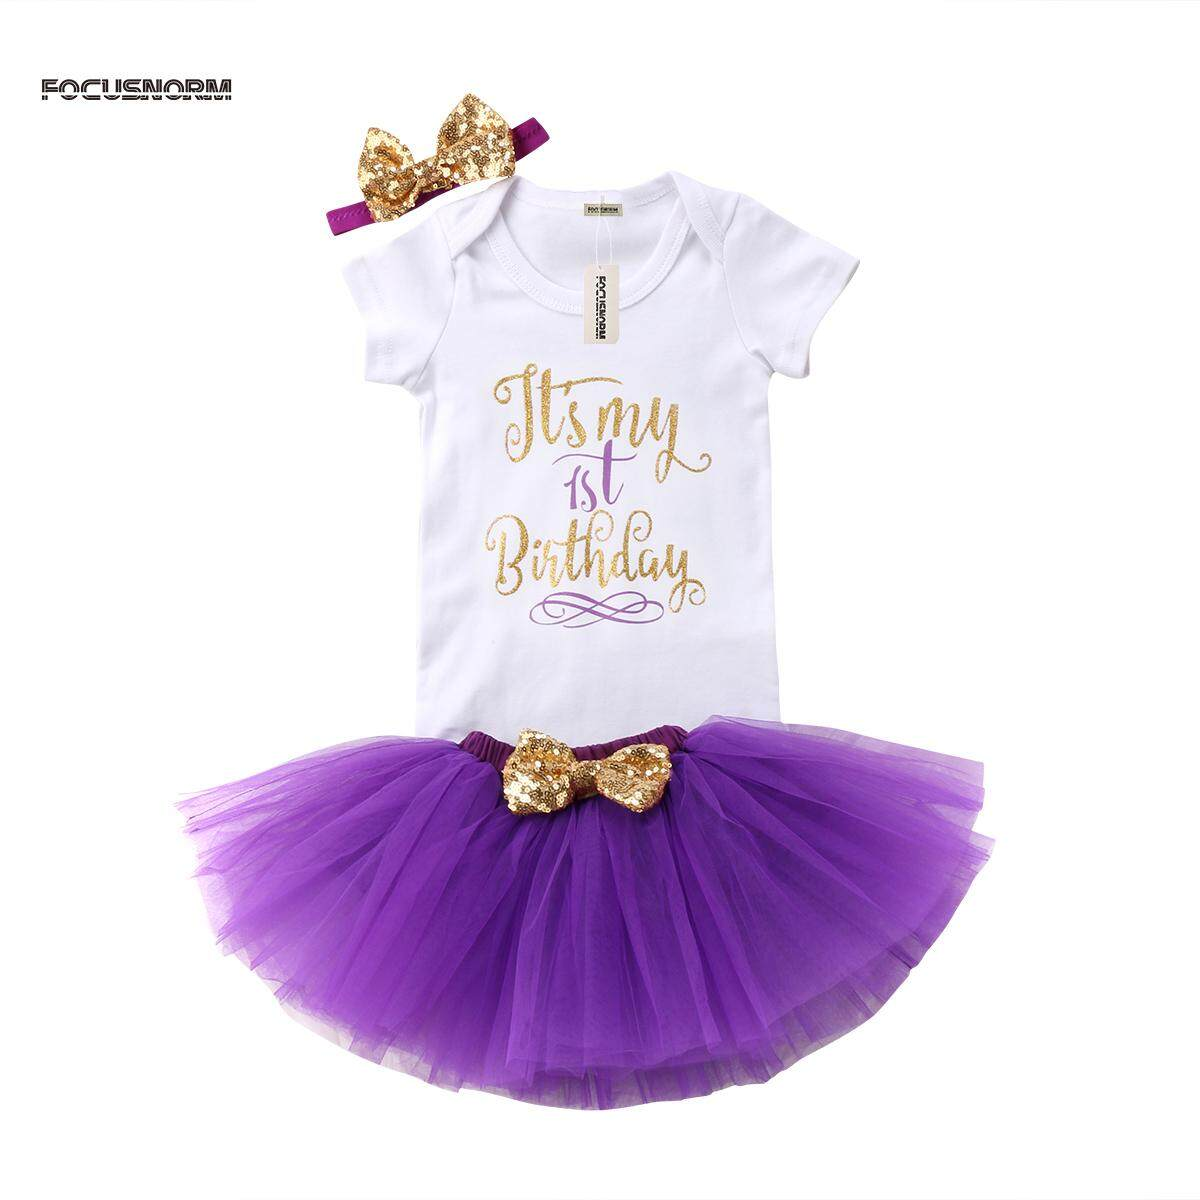 82a4879962 Baby Girls Birthday Dress Rompers Tutu Skirt Headband Outfit Clothes |  Lazada PH